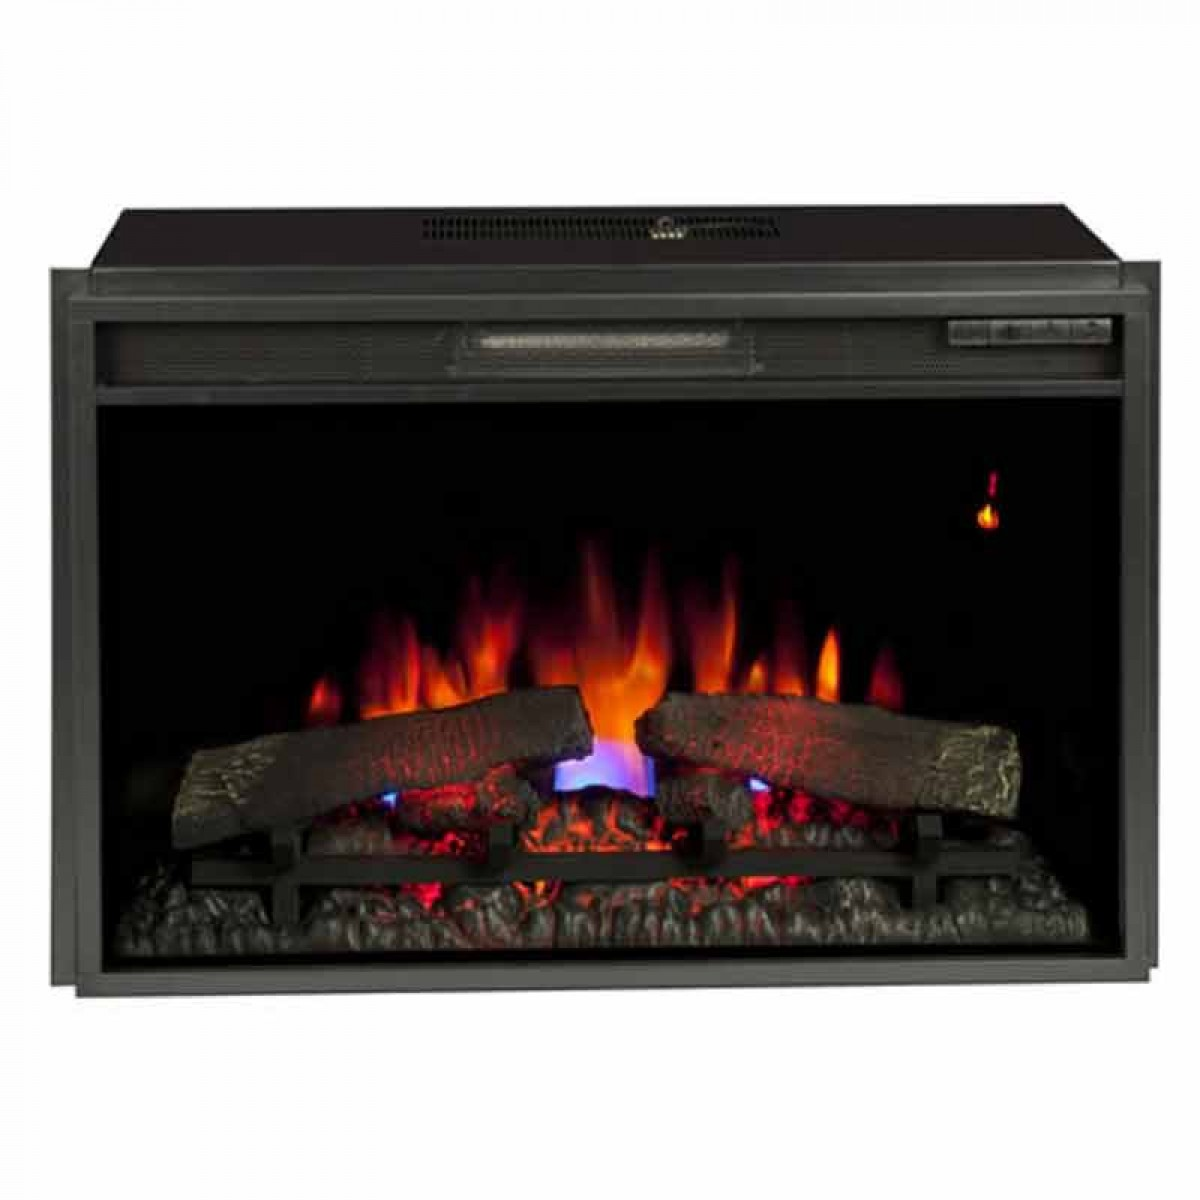 "Classic Flame 26EF031GRP 26"" Spectrafire Plus with Safer"